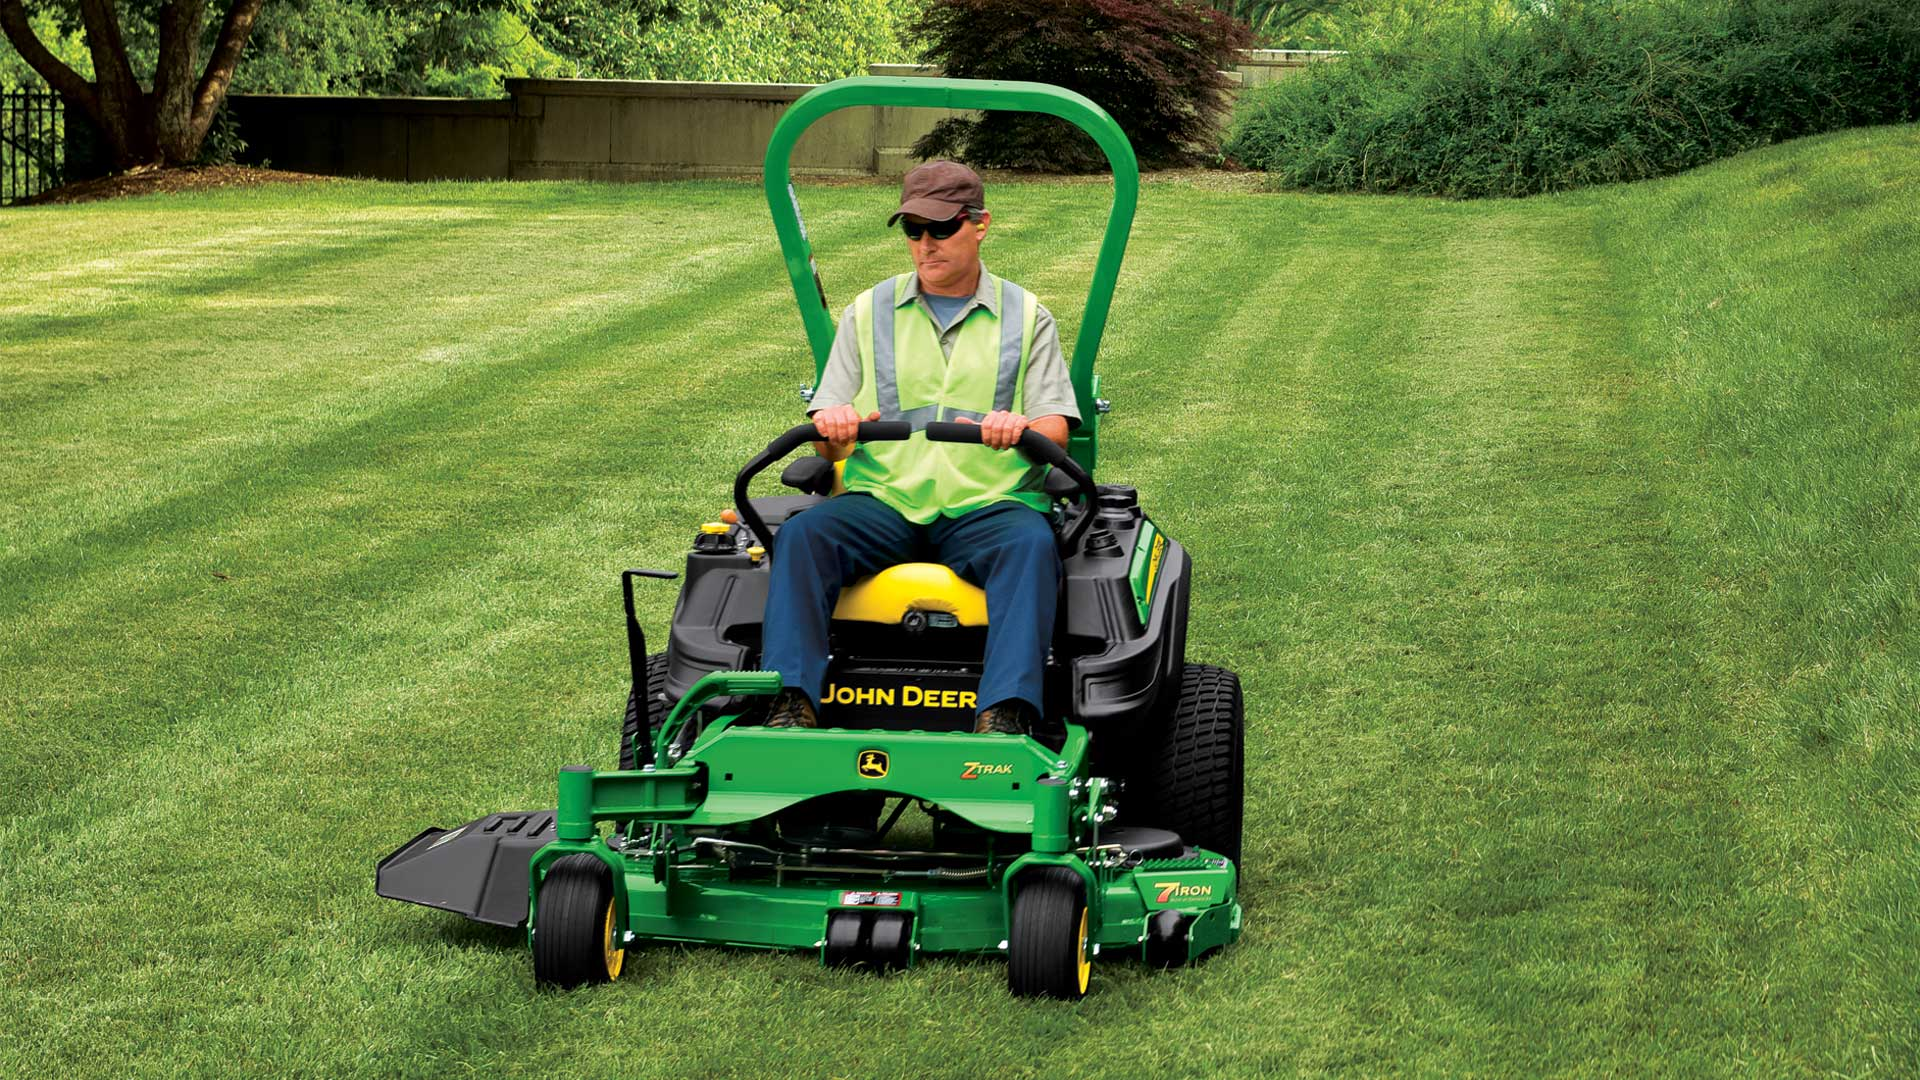 Commercial mower ja...wunderbar!